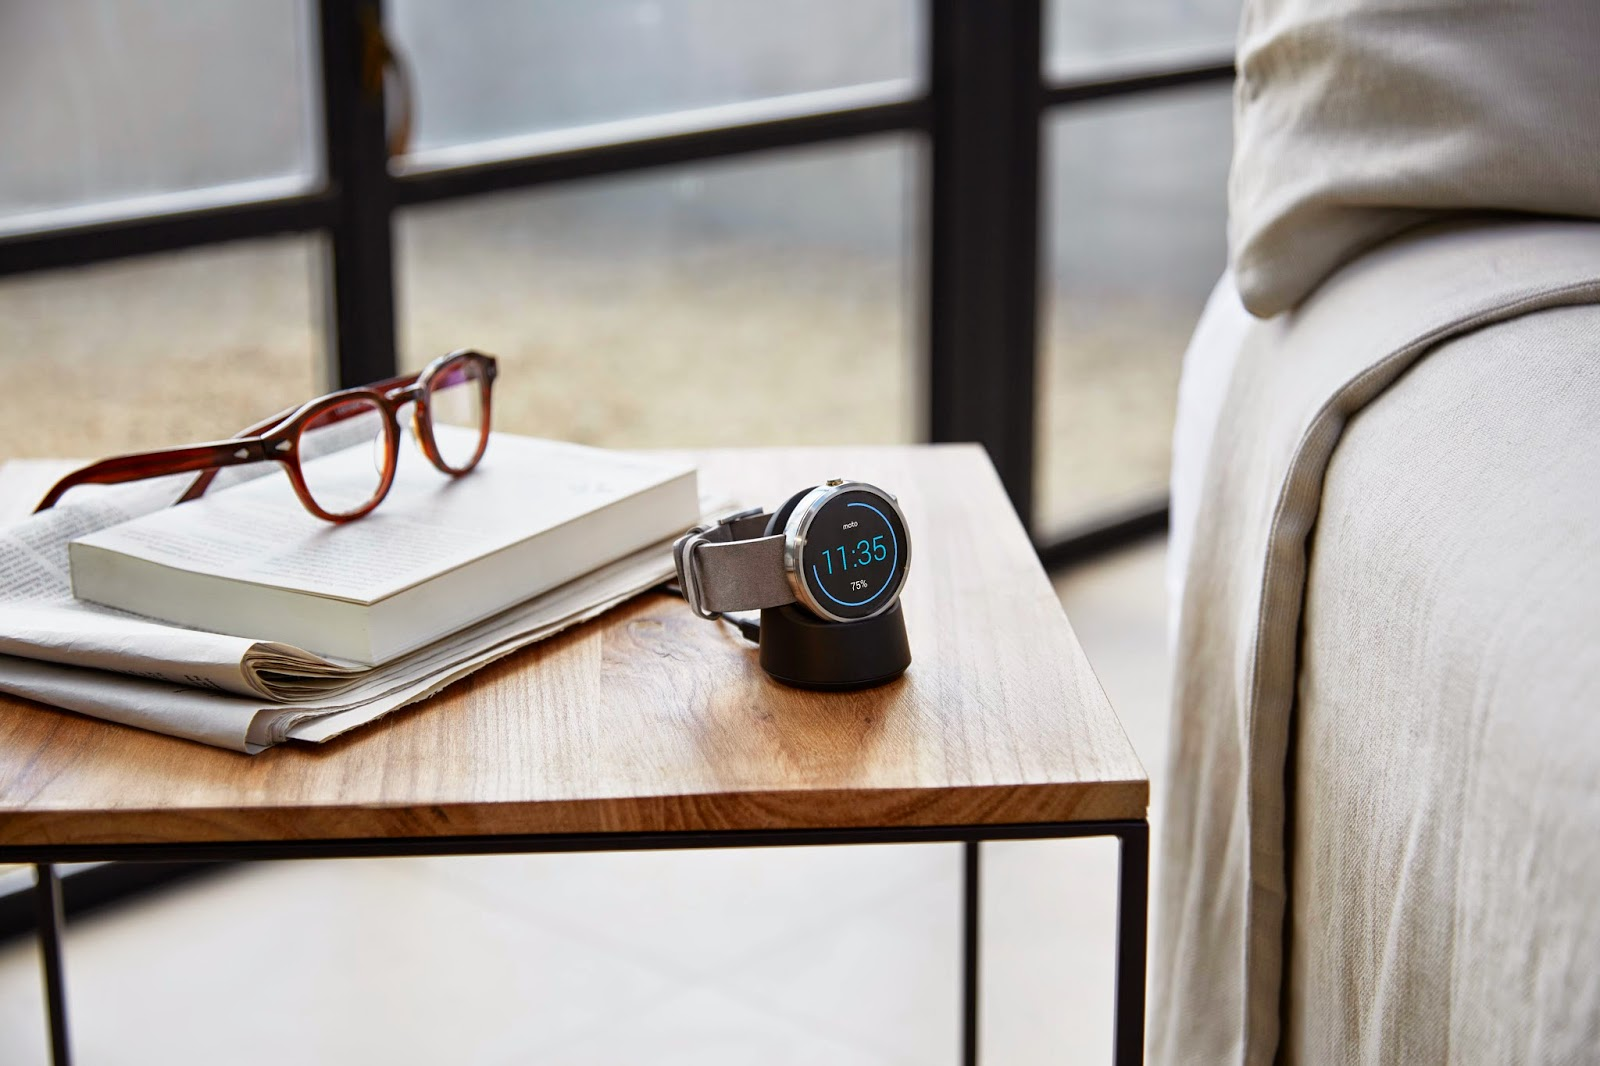 5 Out-Of-The Box Things You Can Do With Your New Moto 360